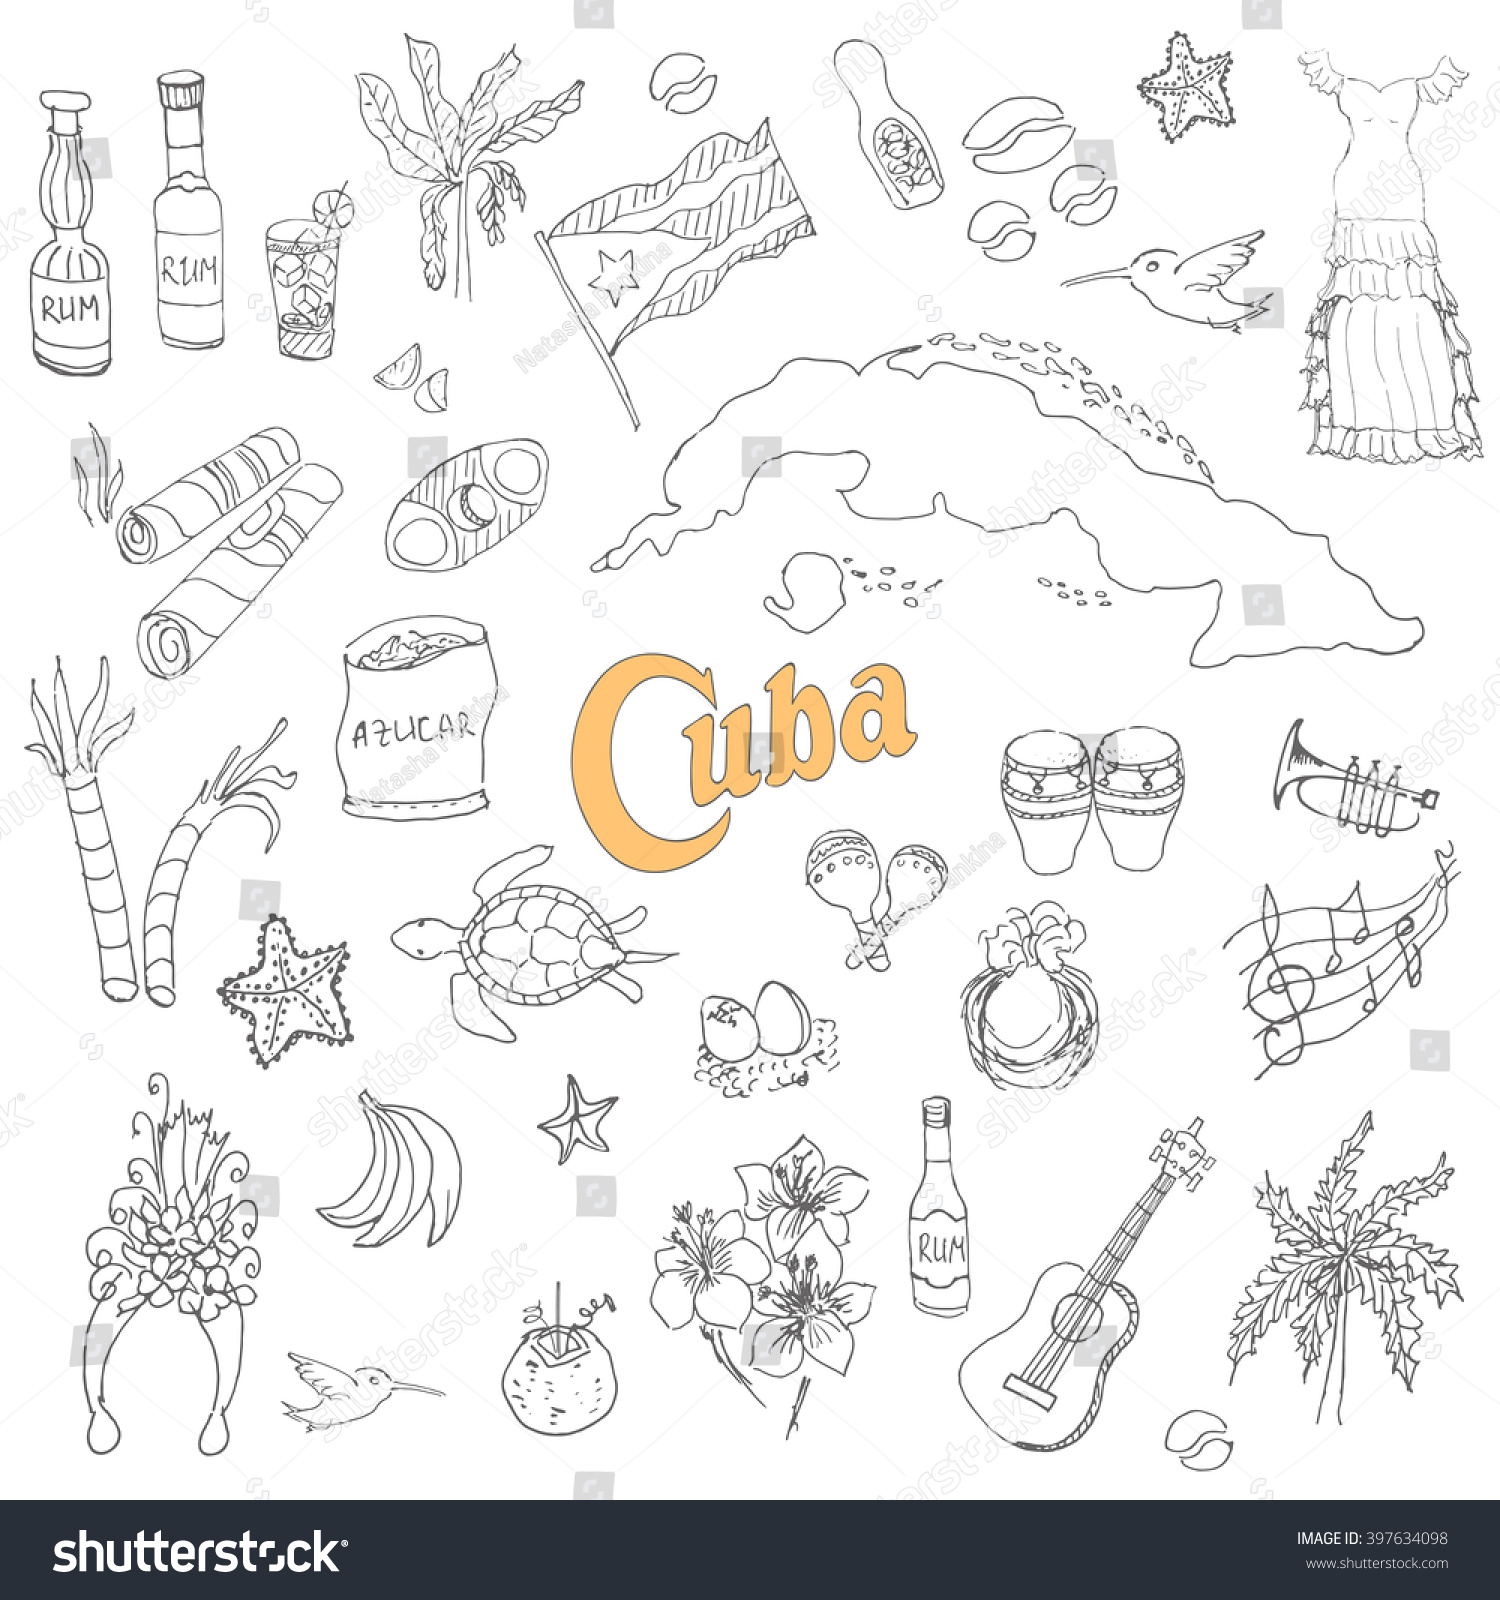 set hand drawn cuba icons cuban stock vector 397634098 shutterstock